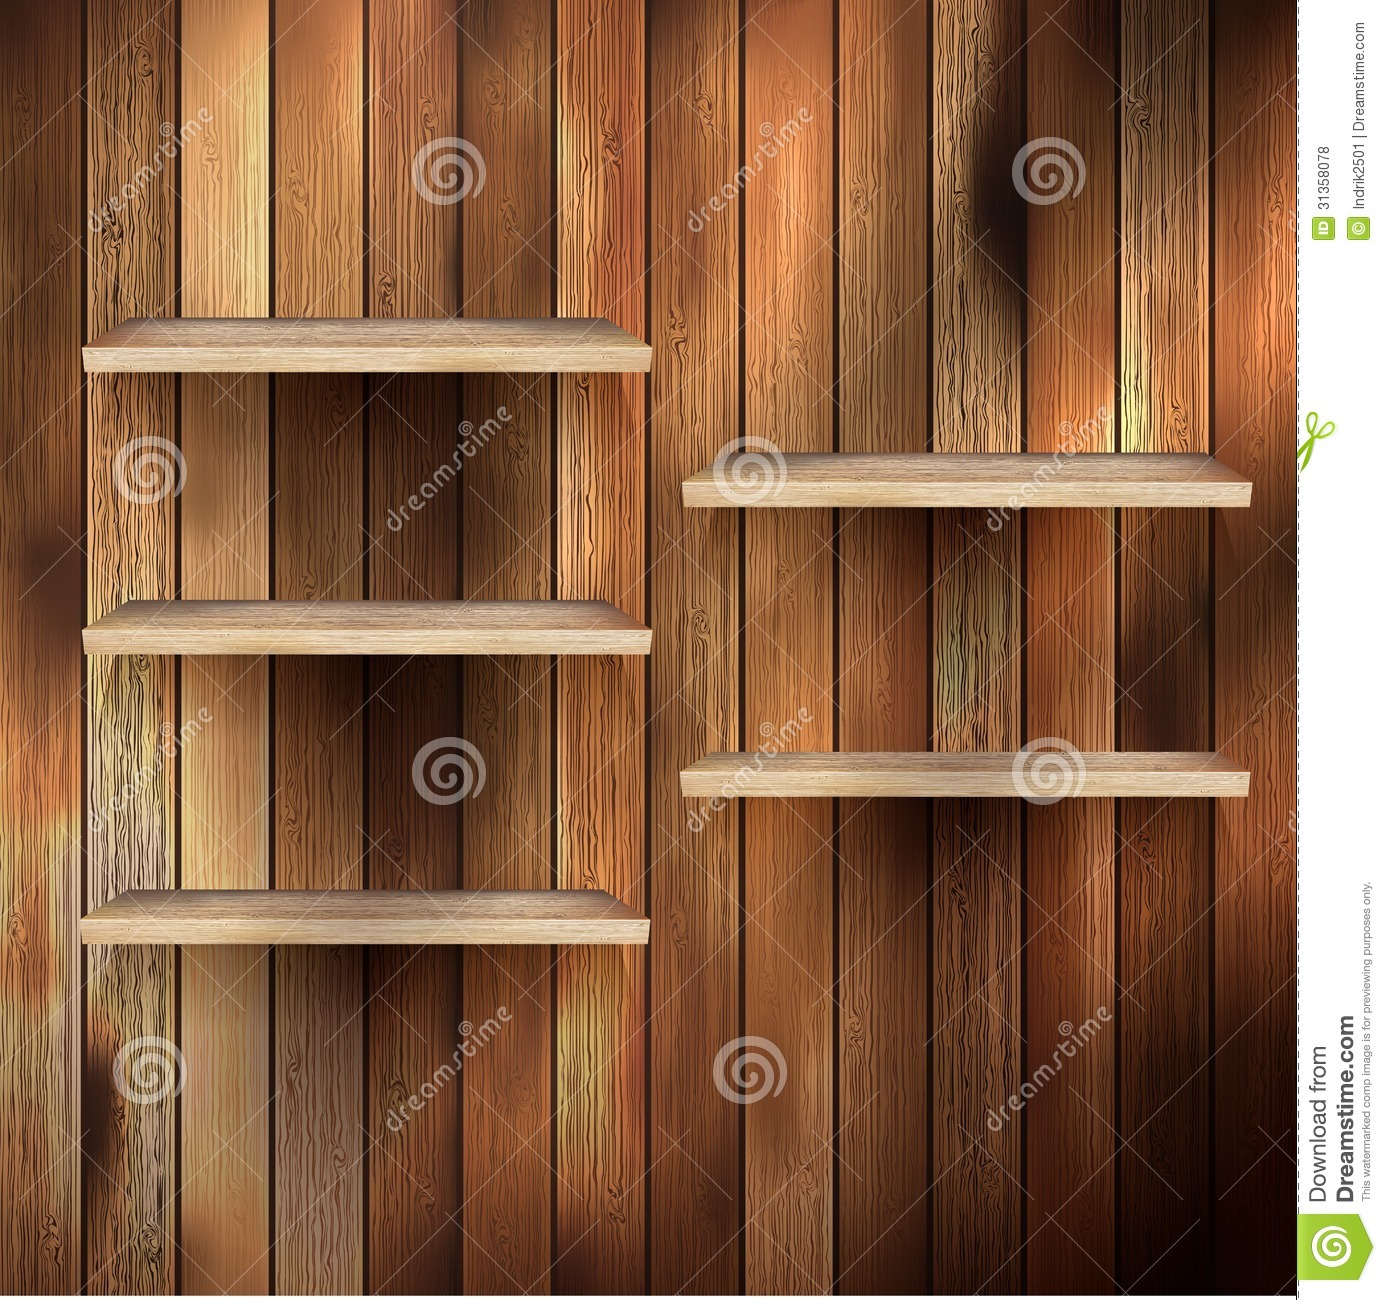 Interior wooden shelves free vector - Empty Shelf For Exhibit On Wood Background Eps 10 Royalty Free Stock Photos